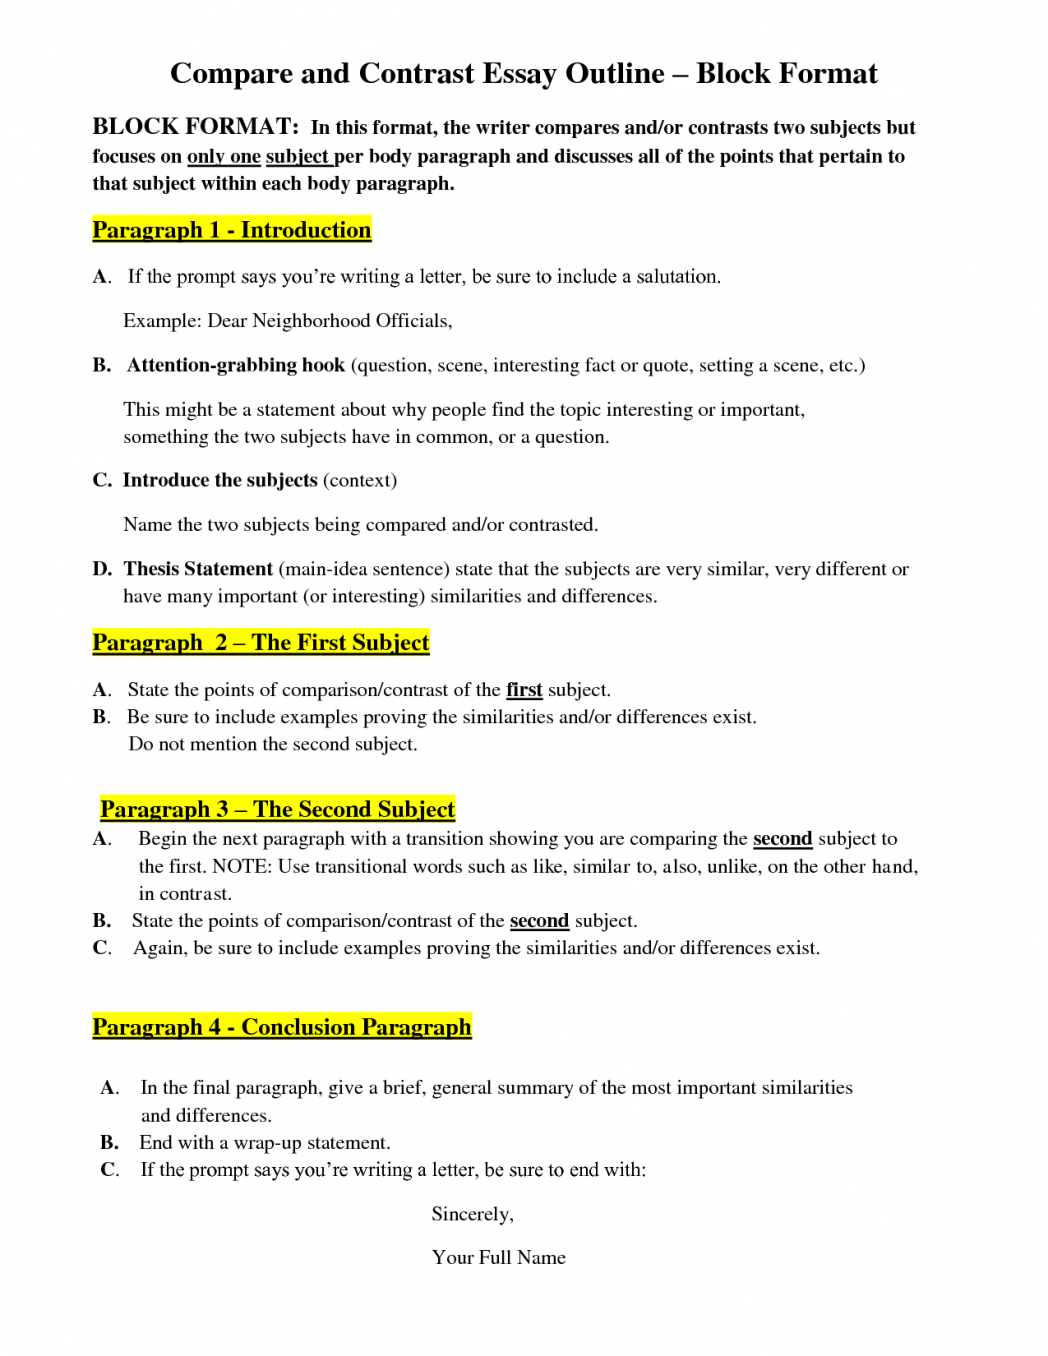 007 Essay Example Essays Compare And Contrasts For Year College Vs Outline Block 1048x1356 Comparison Best Contrast Sample Free Examples Middle School Samples High Pdf Full